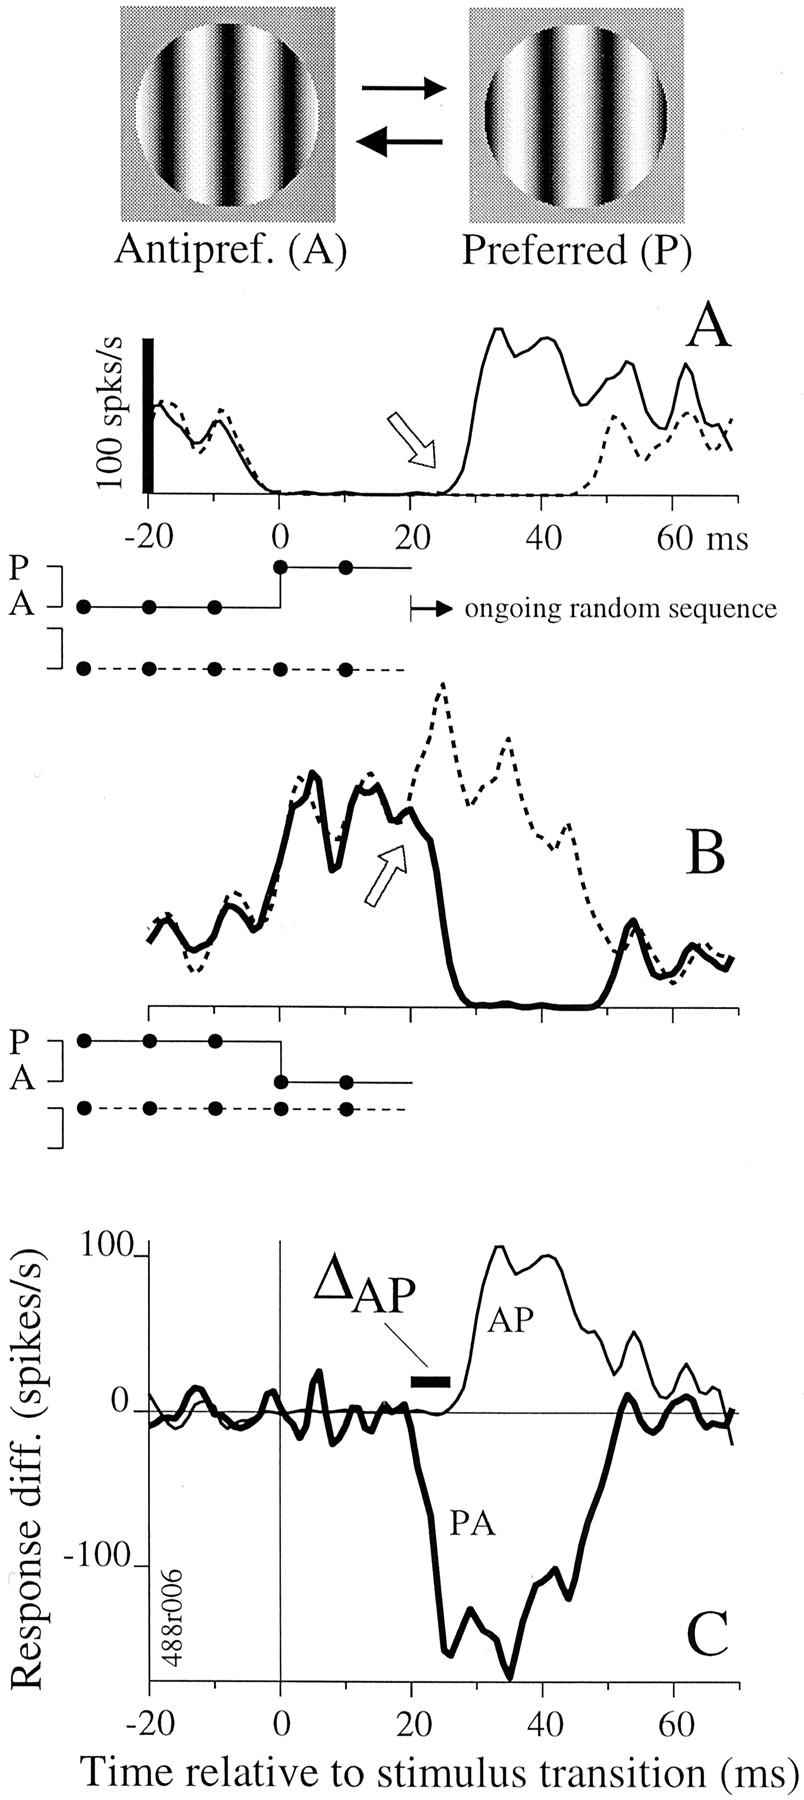 The Timing Of Response Onset And Offset In Macaque Visual Neurons Shift Register Diagram Download Figure